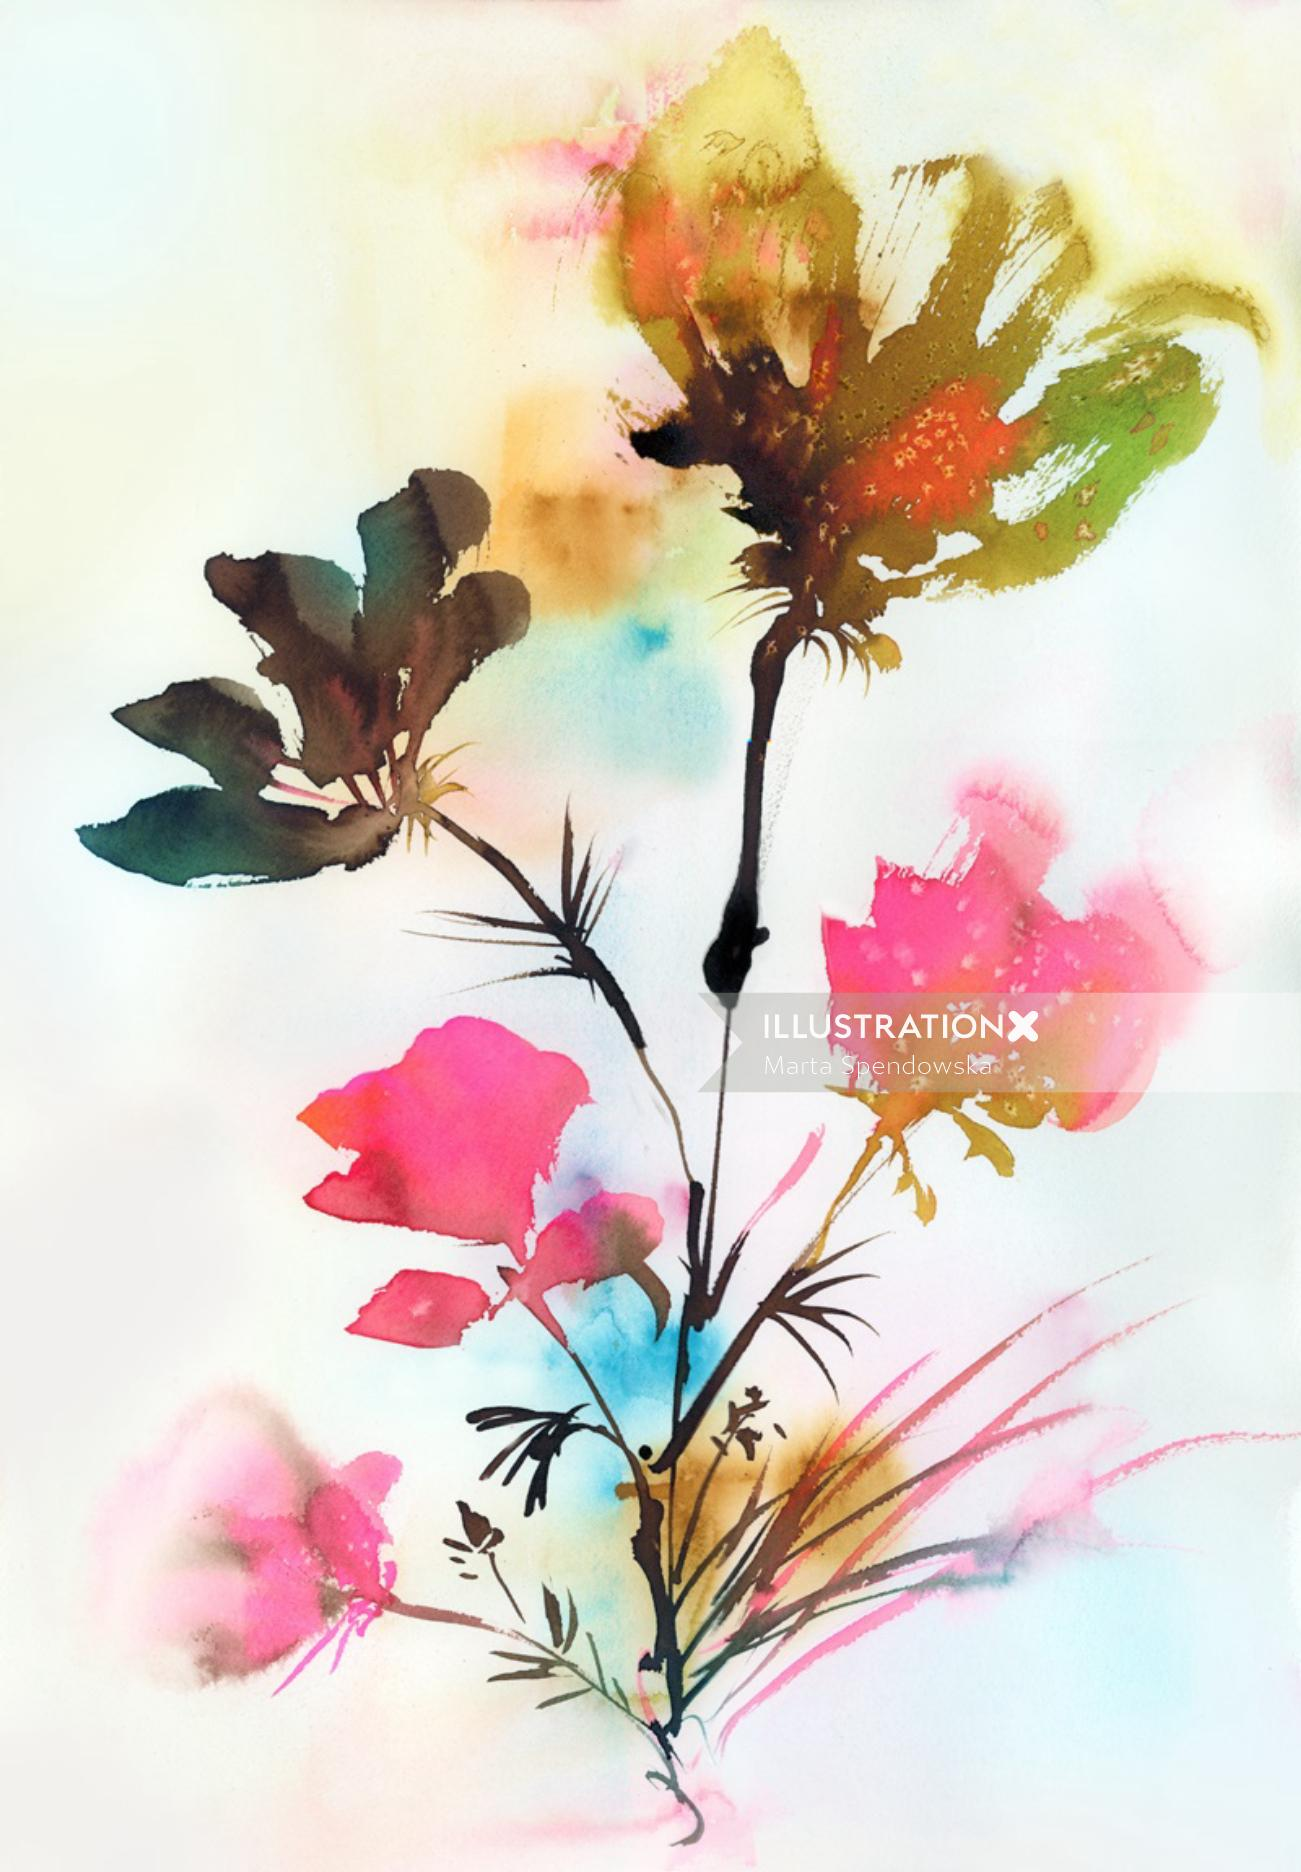 Colorful water paint illustration of flowers